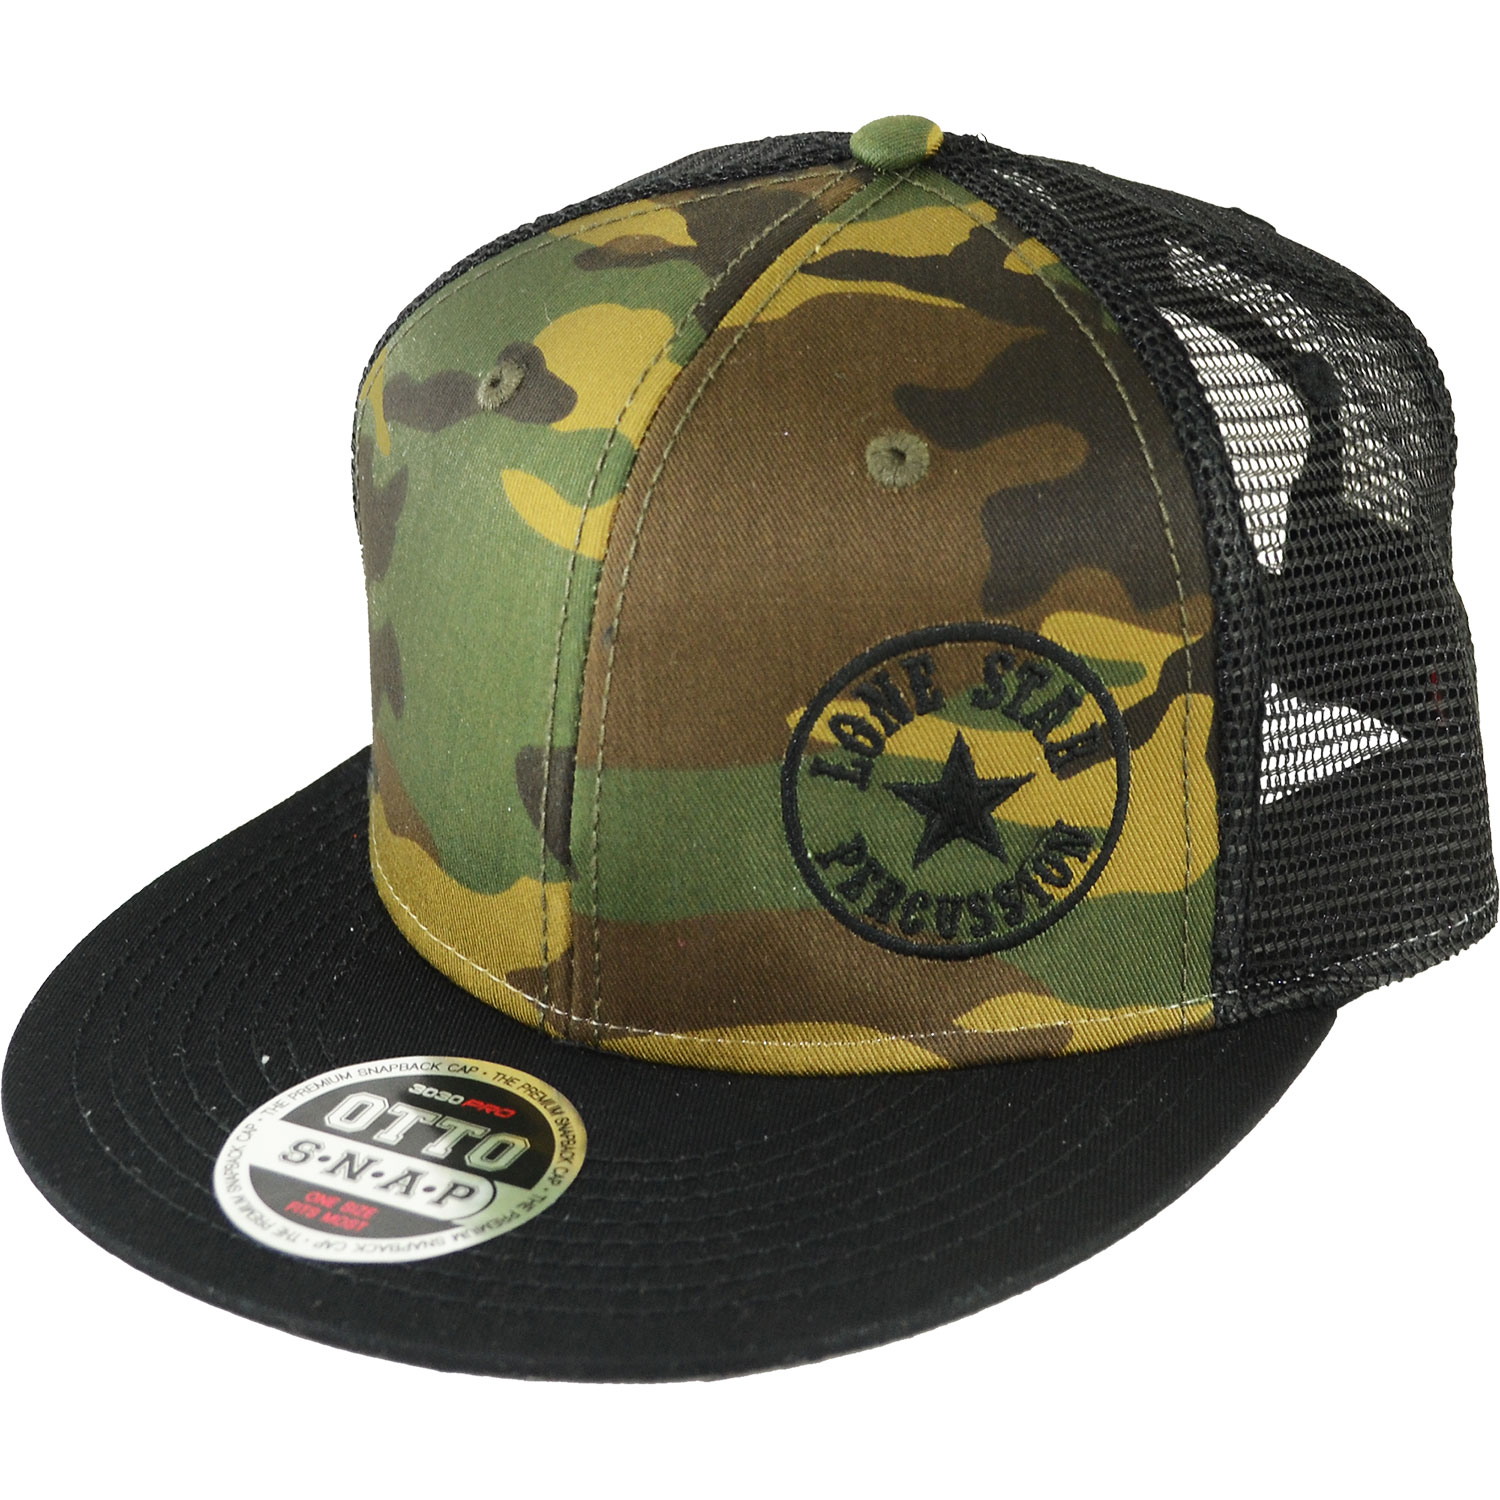 Lone Star Percussion Camo & Black Mesh Trucker/Baseball Cap